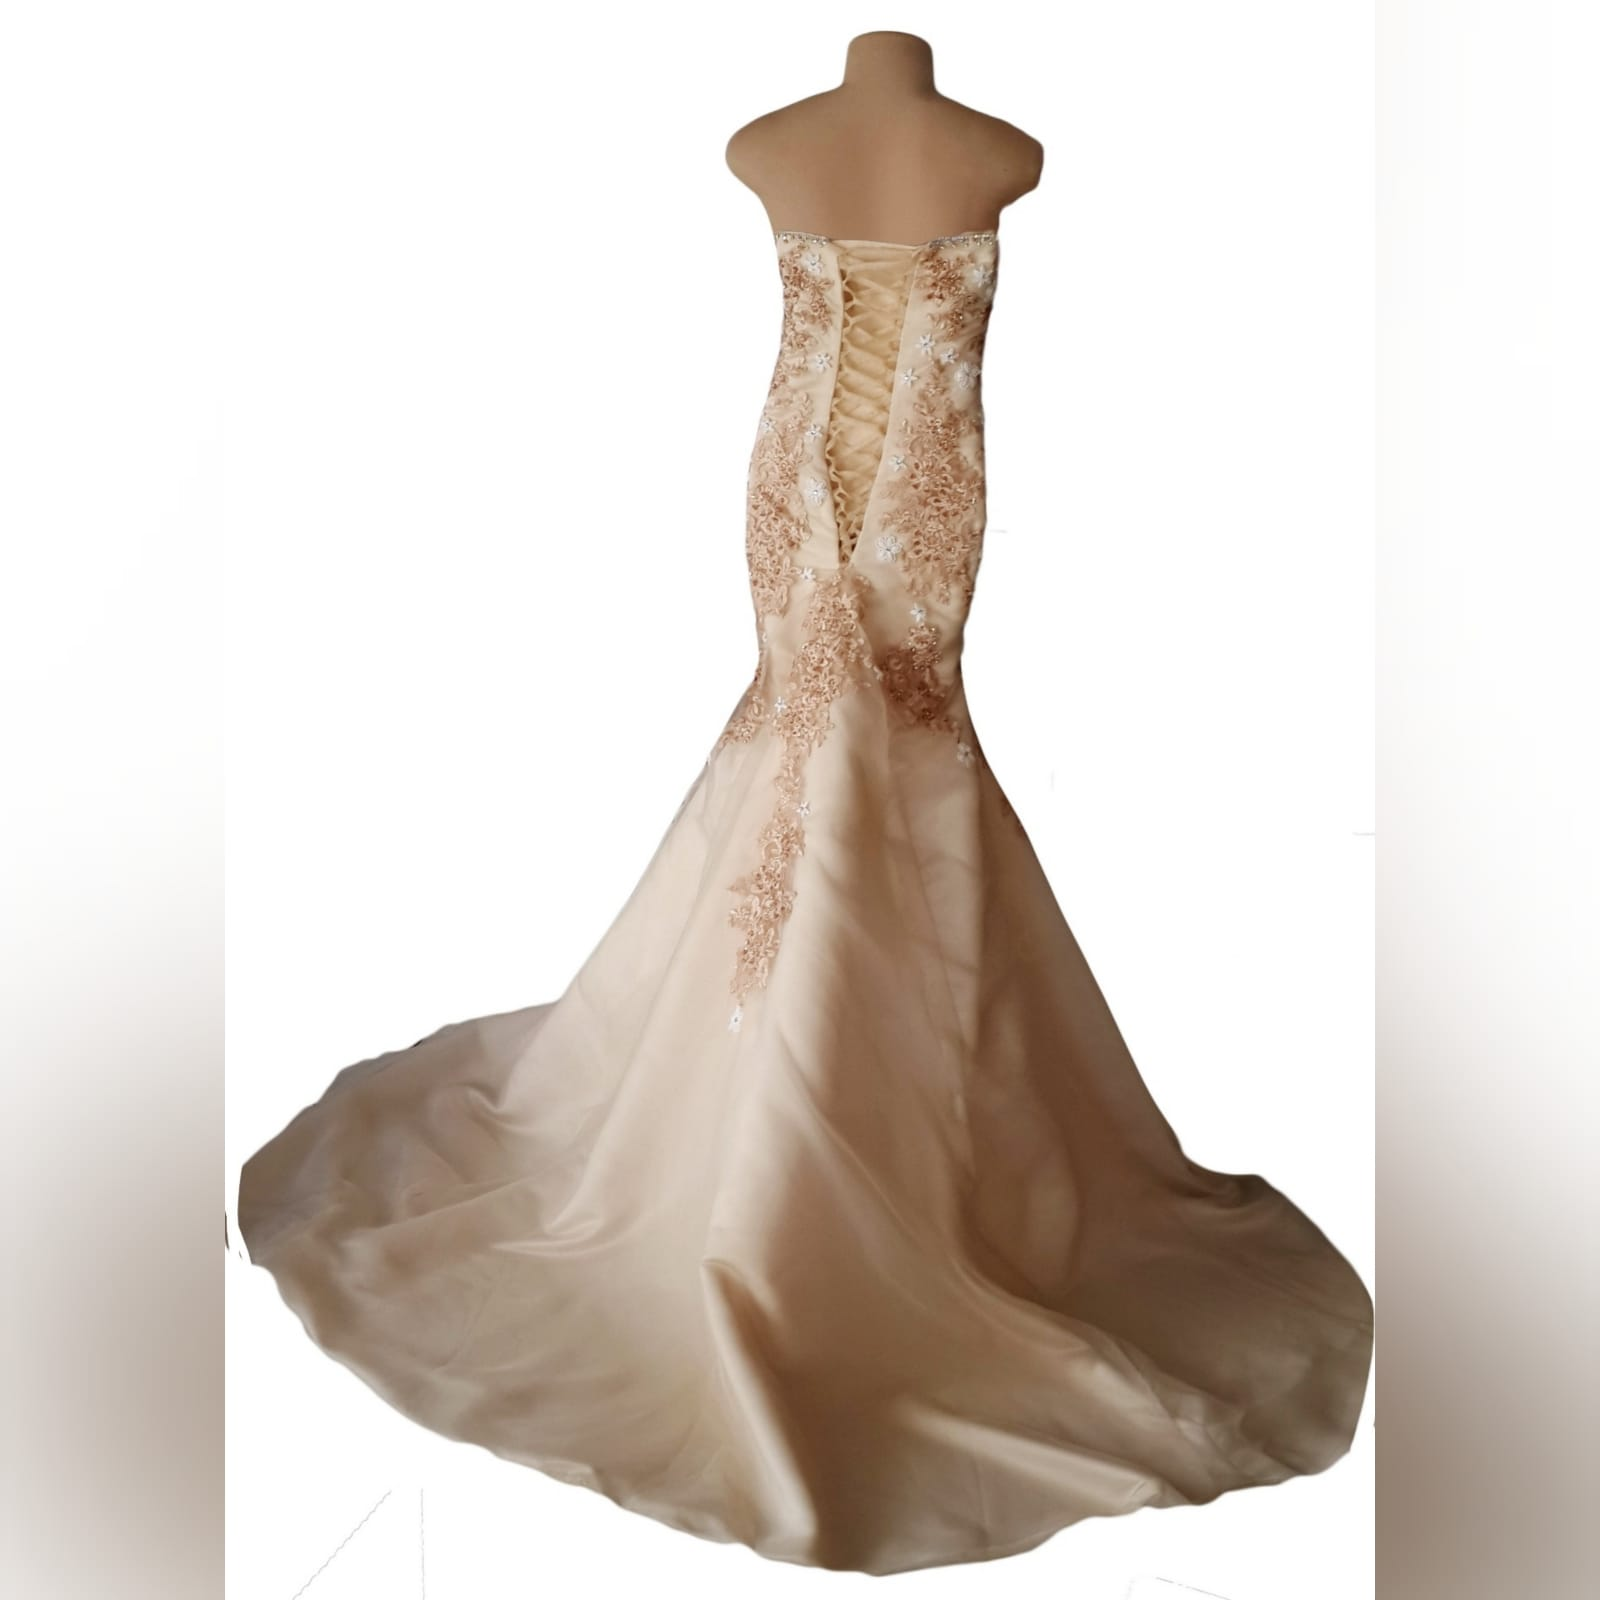 Sweet heart boob tube champagne wedding dress 4 champagne & white mermaid wedding dress, sweet heart boob tube with a lace up back. Bodice detailed with lace & beads